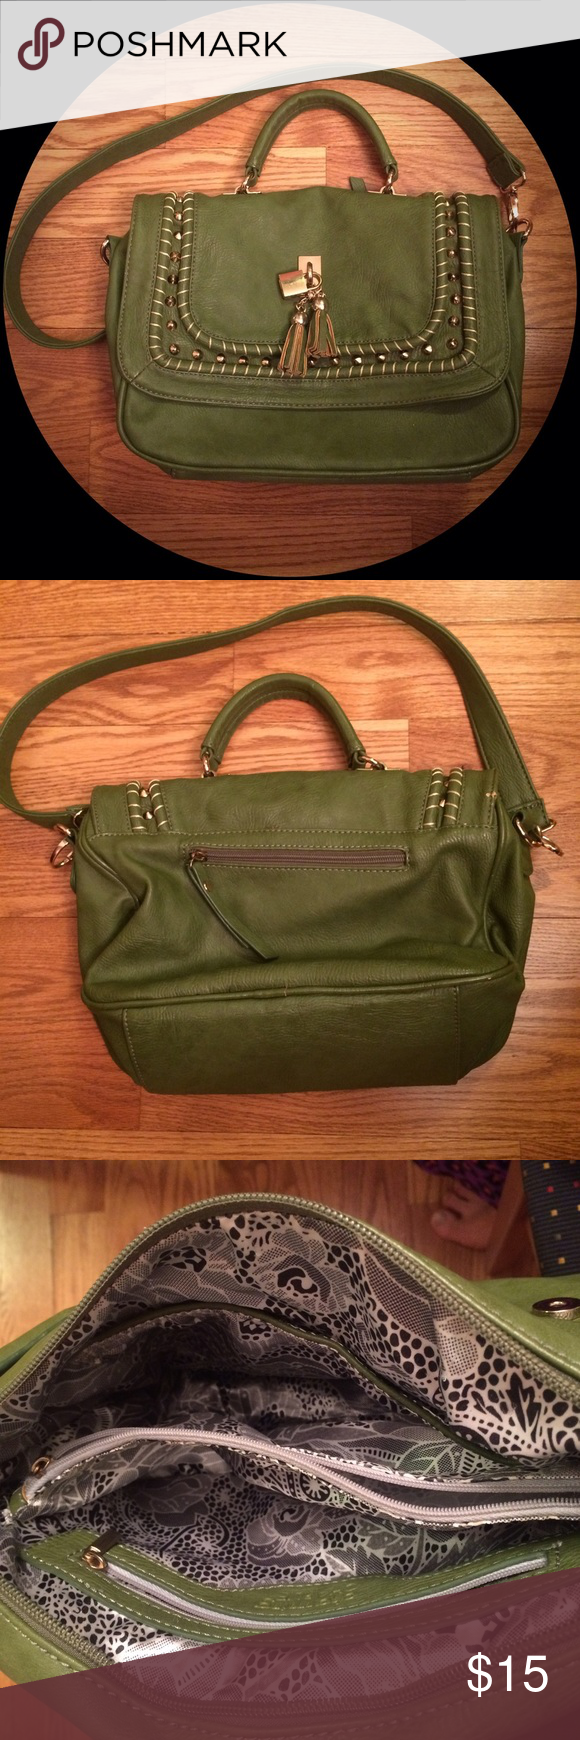 Tasseled & Studded Army Green Shoulder Bag This has a double inside compartment and plenty of pockets. There are not any stains or rips in the lining. There are few scuffs to the outside surface as pictured, but other than that the bag is in very good condition. Charming Charlie Bags Shoulder Bags